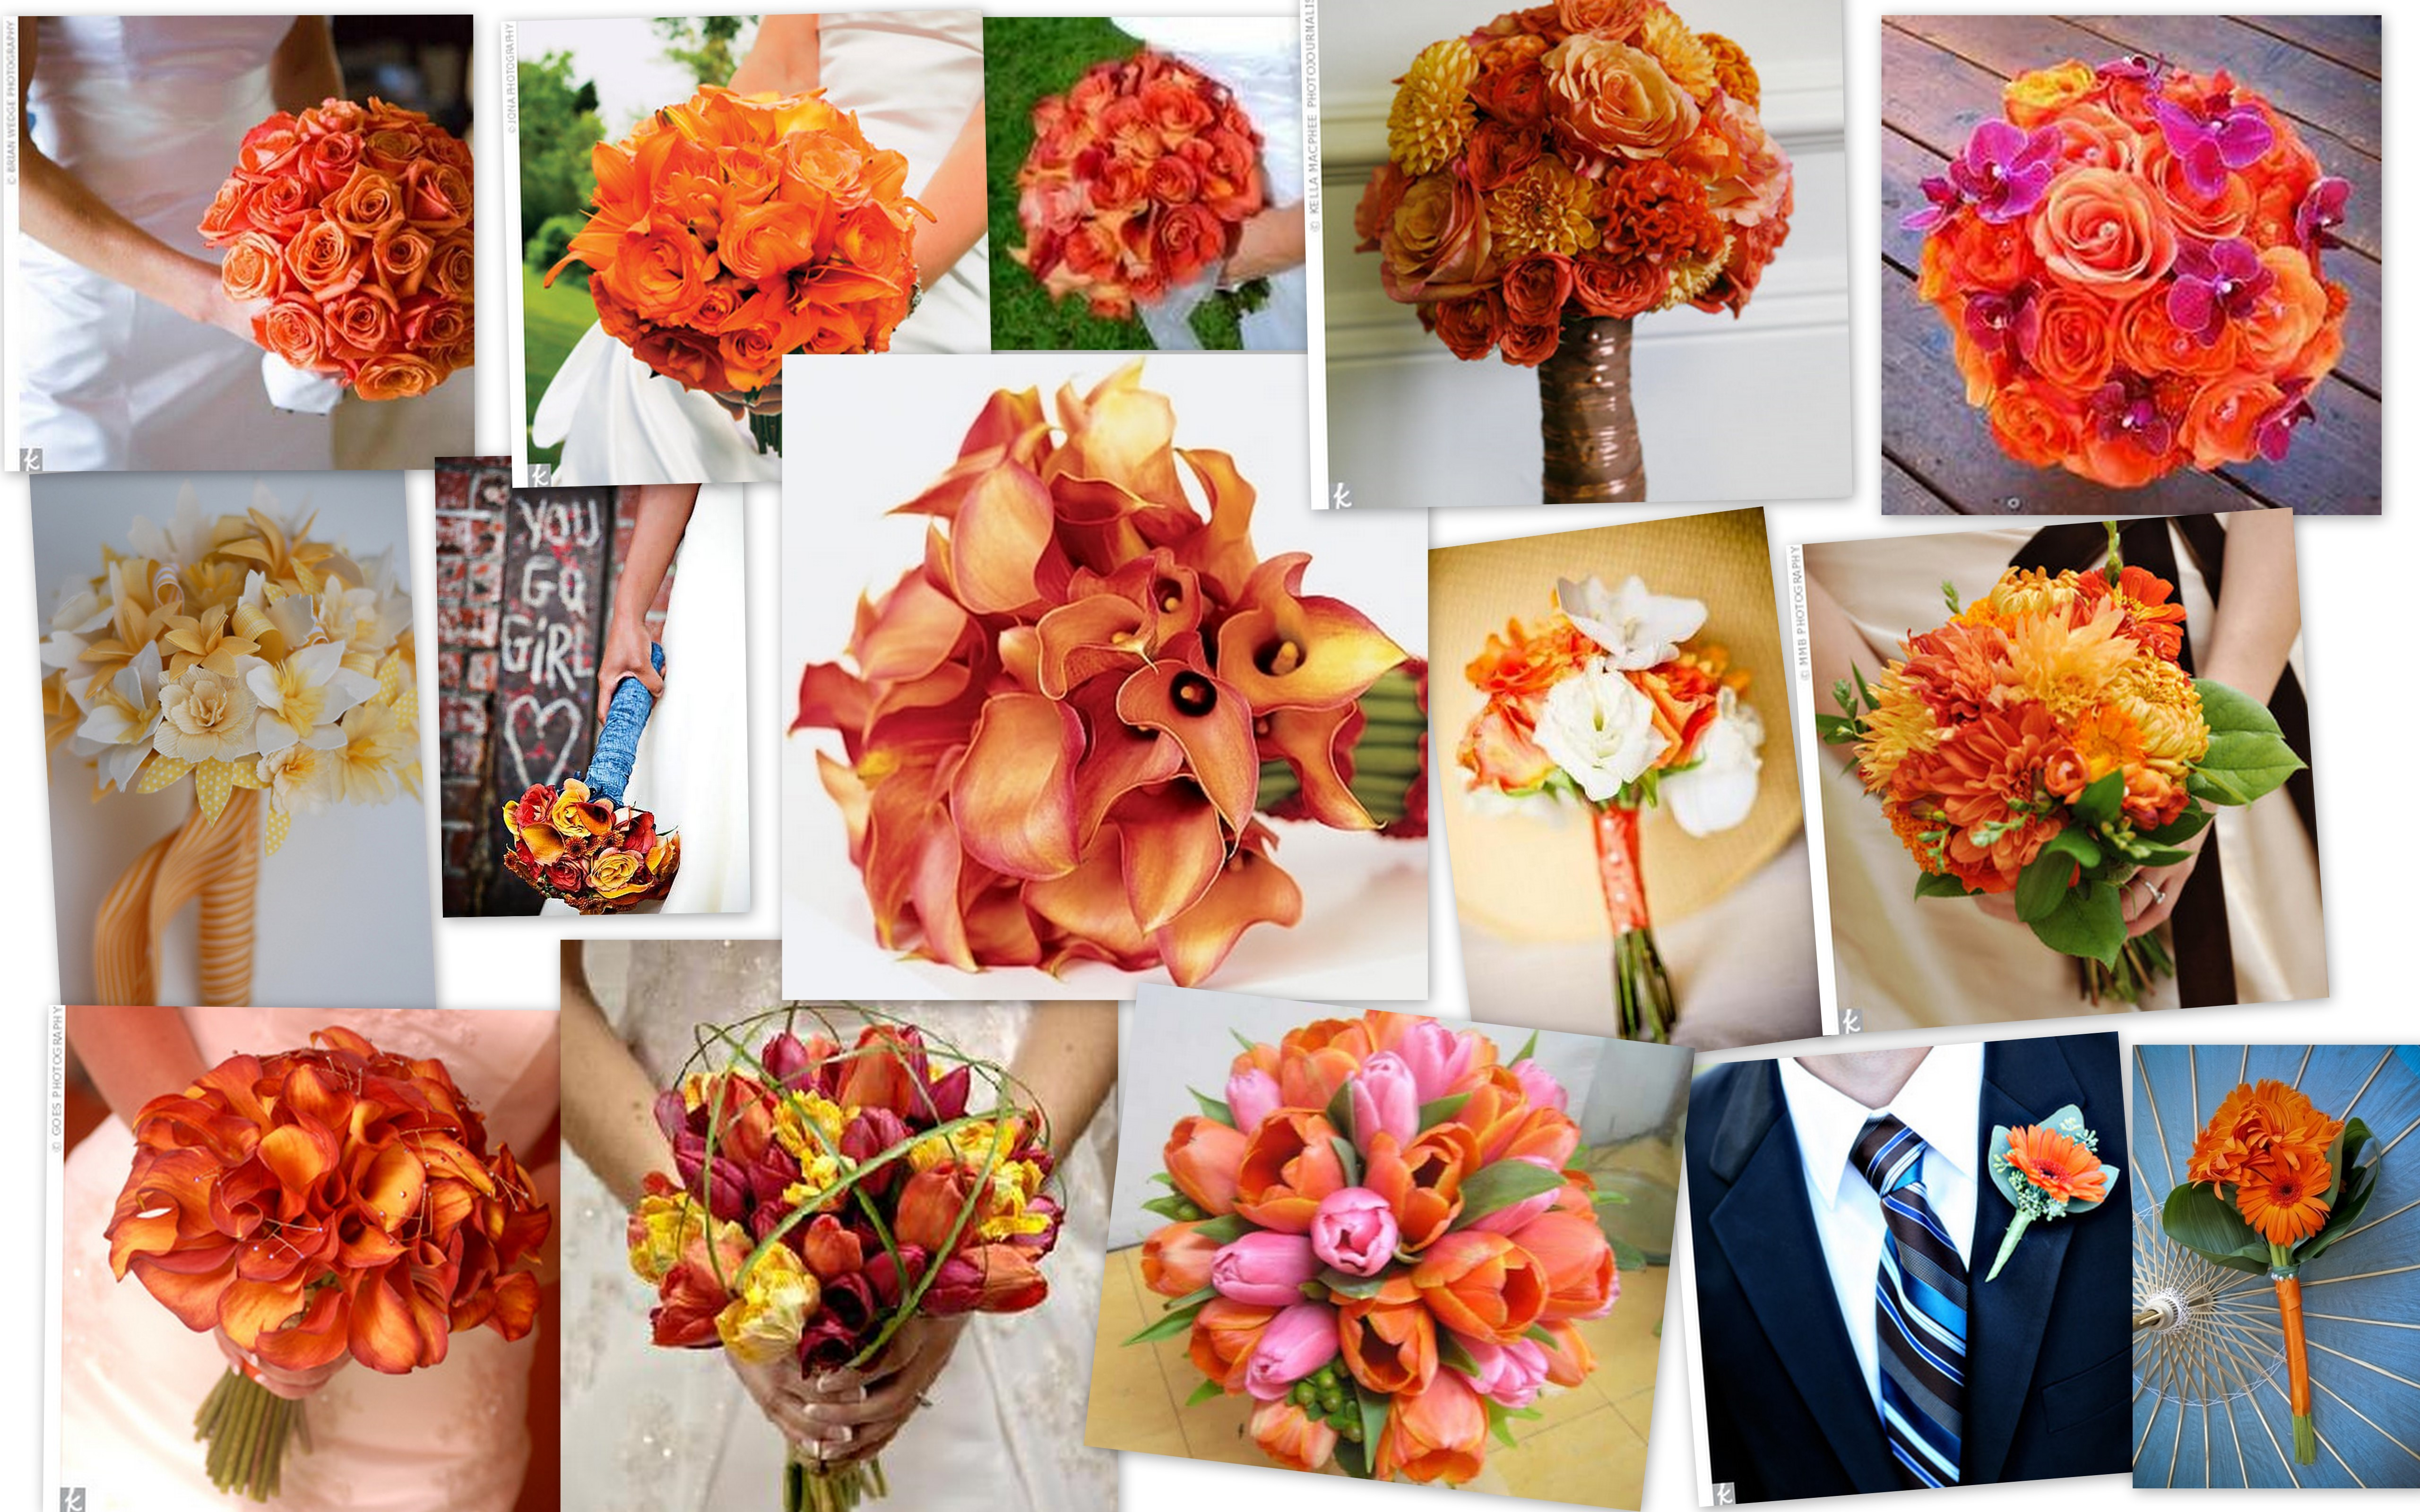 Flowers & Decor, orange, Bride Bouquets, Flowers, Bouquet, Inspiration board